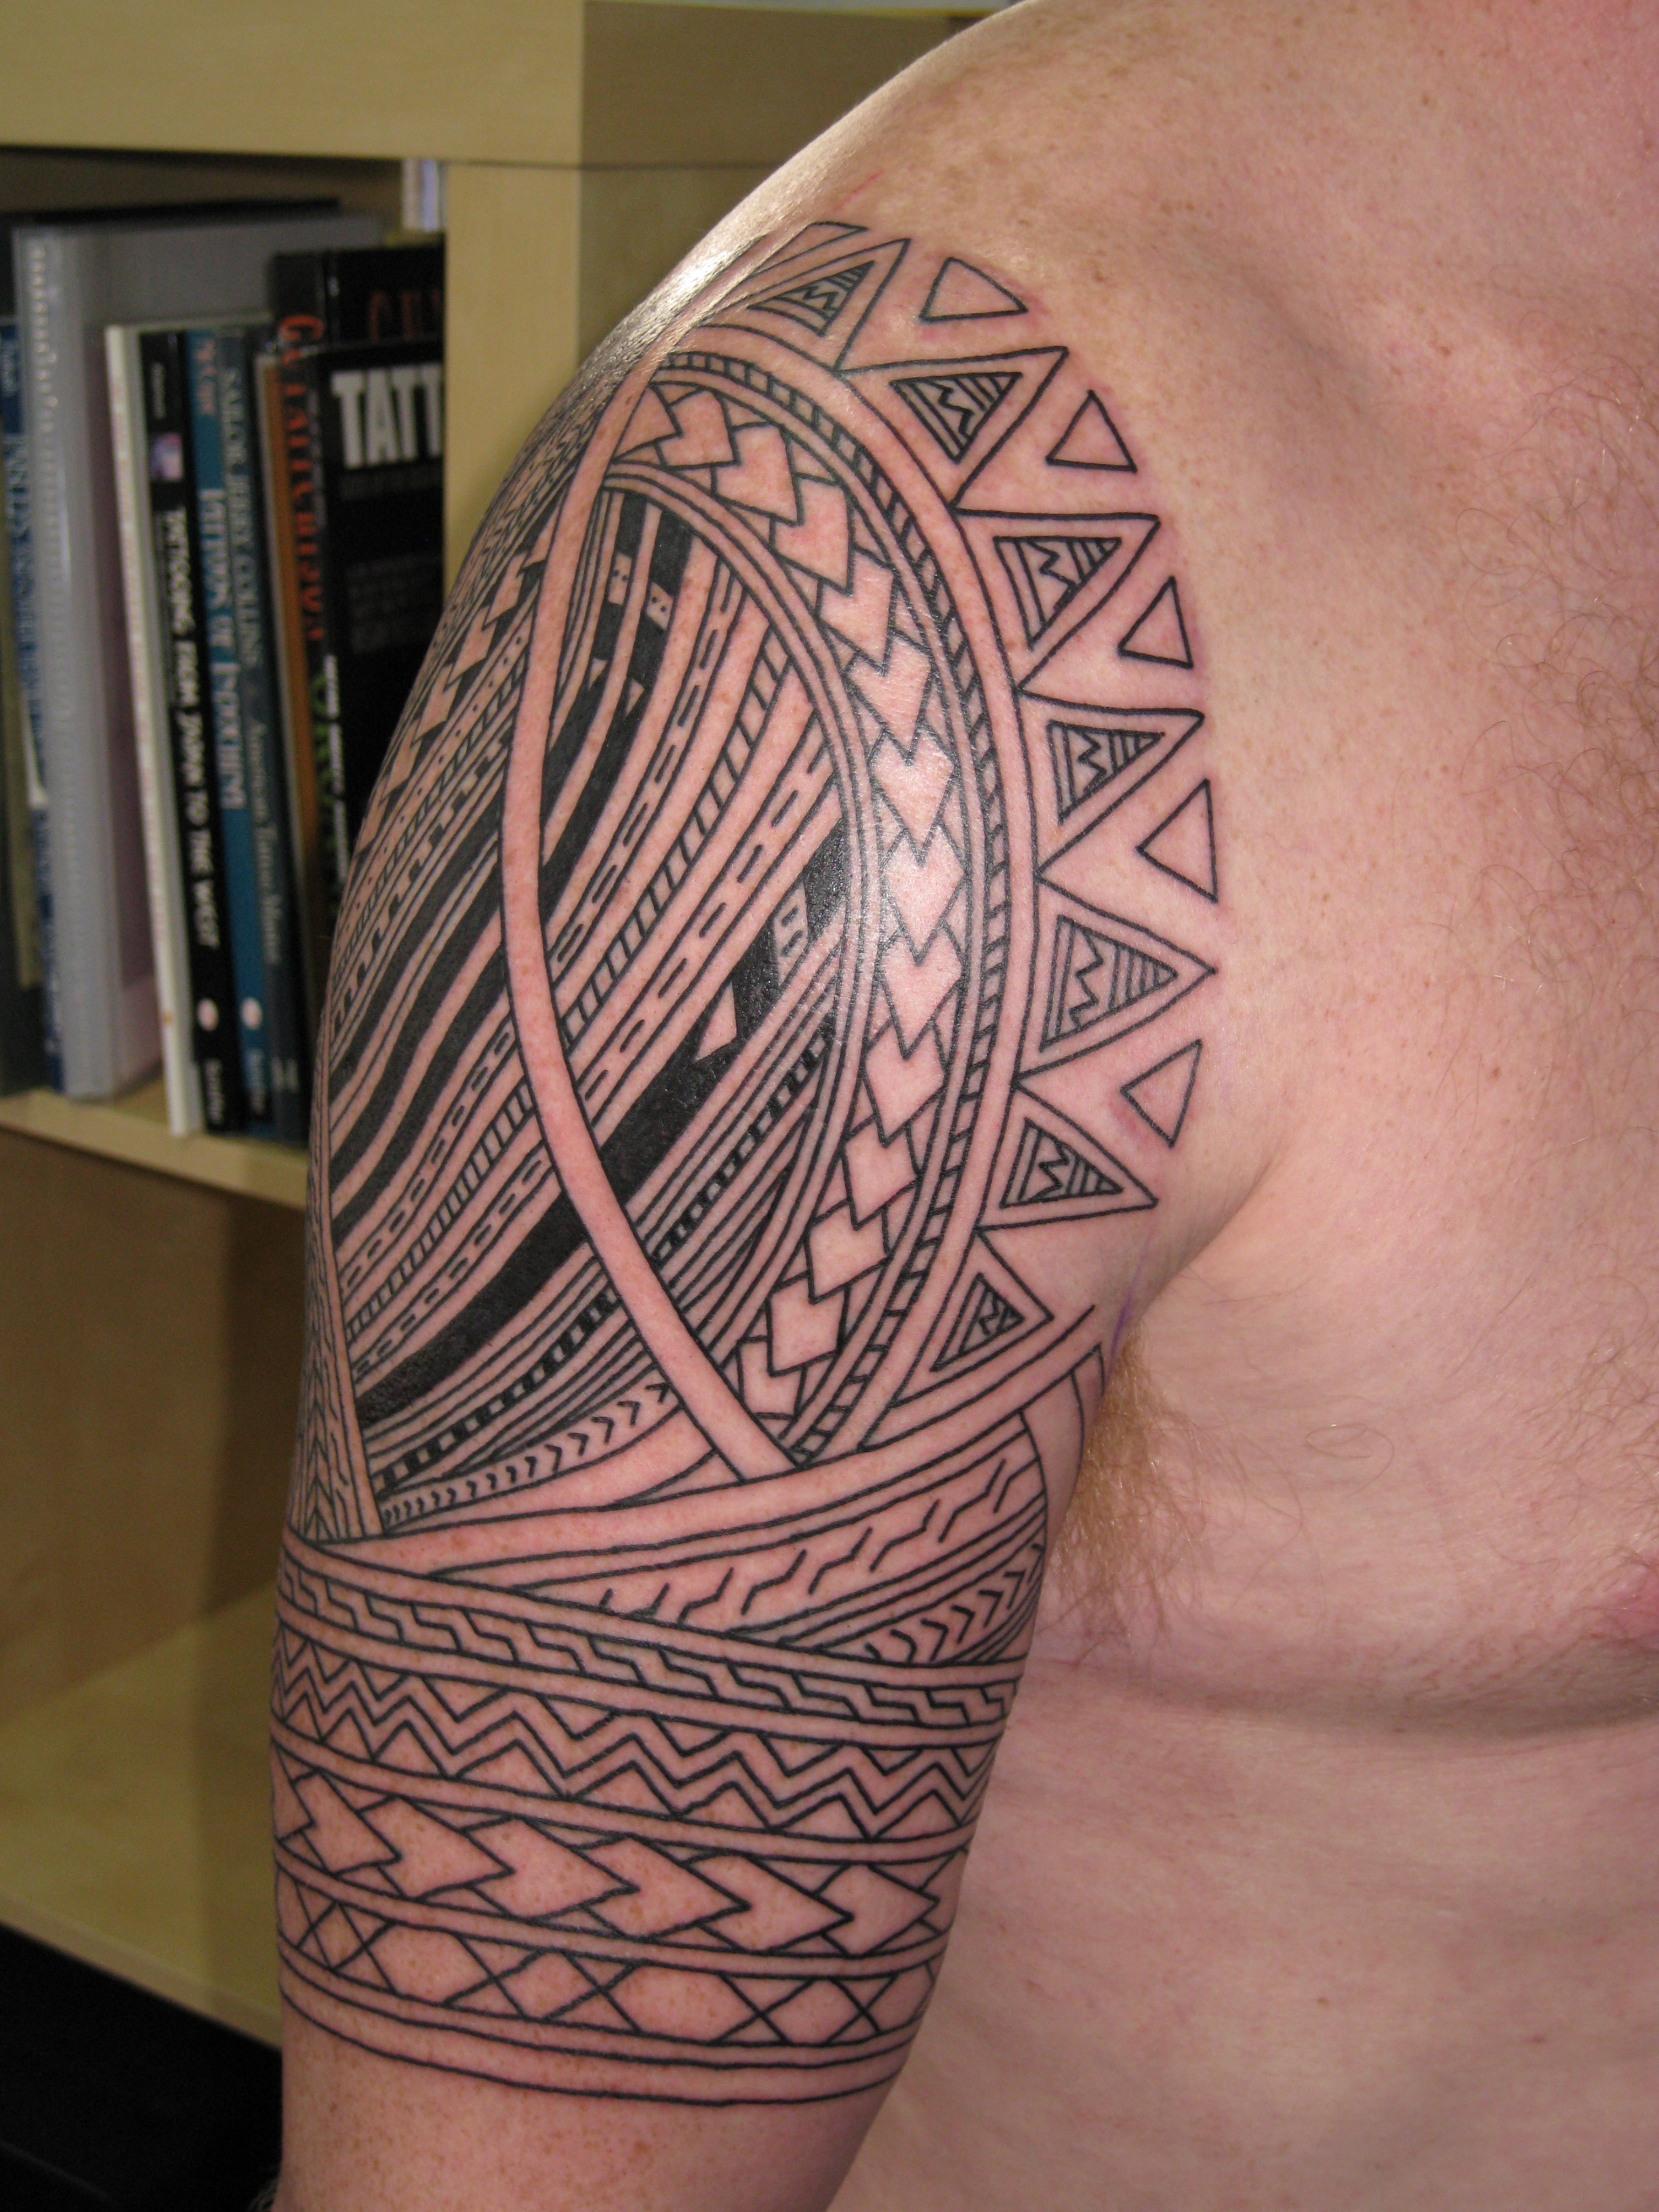 samoan irish st tattoo. Black Bedroom Furniture Sets. Home Design Ideas